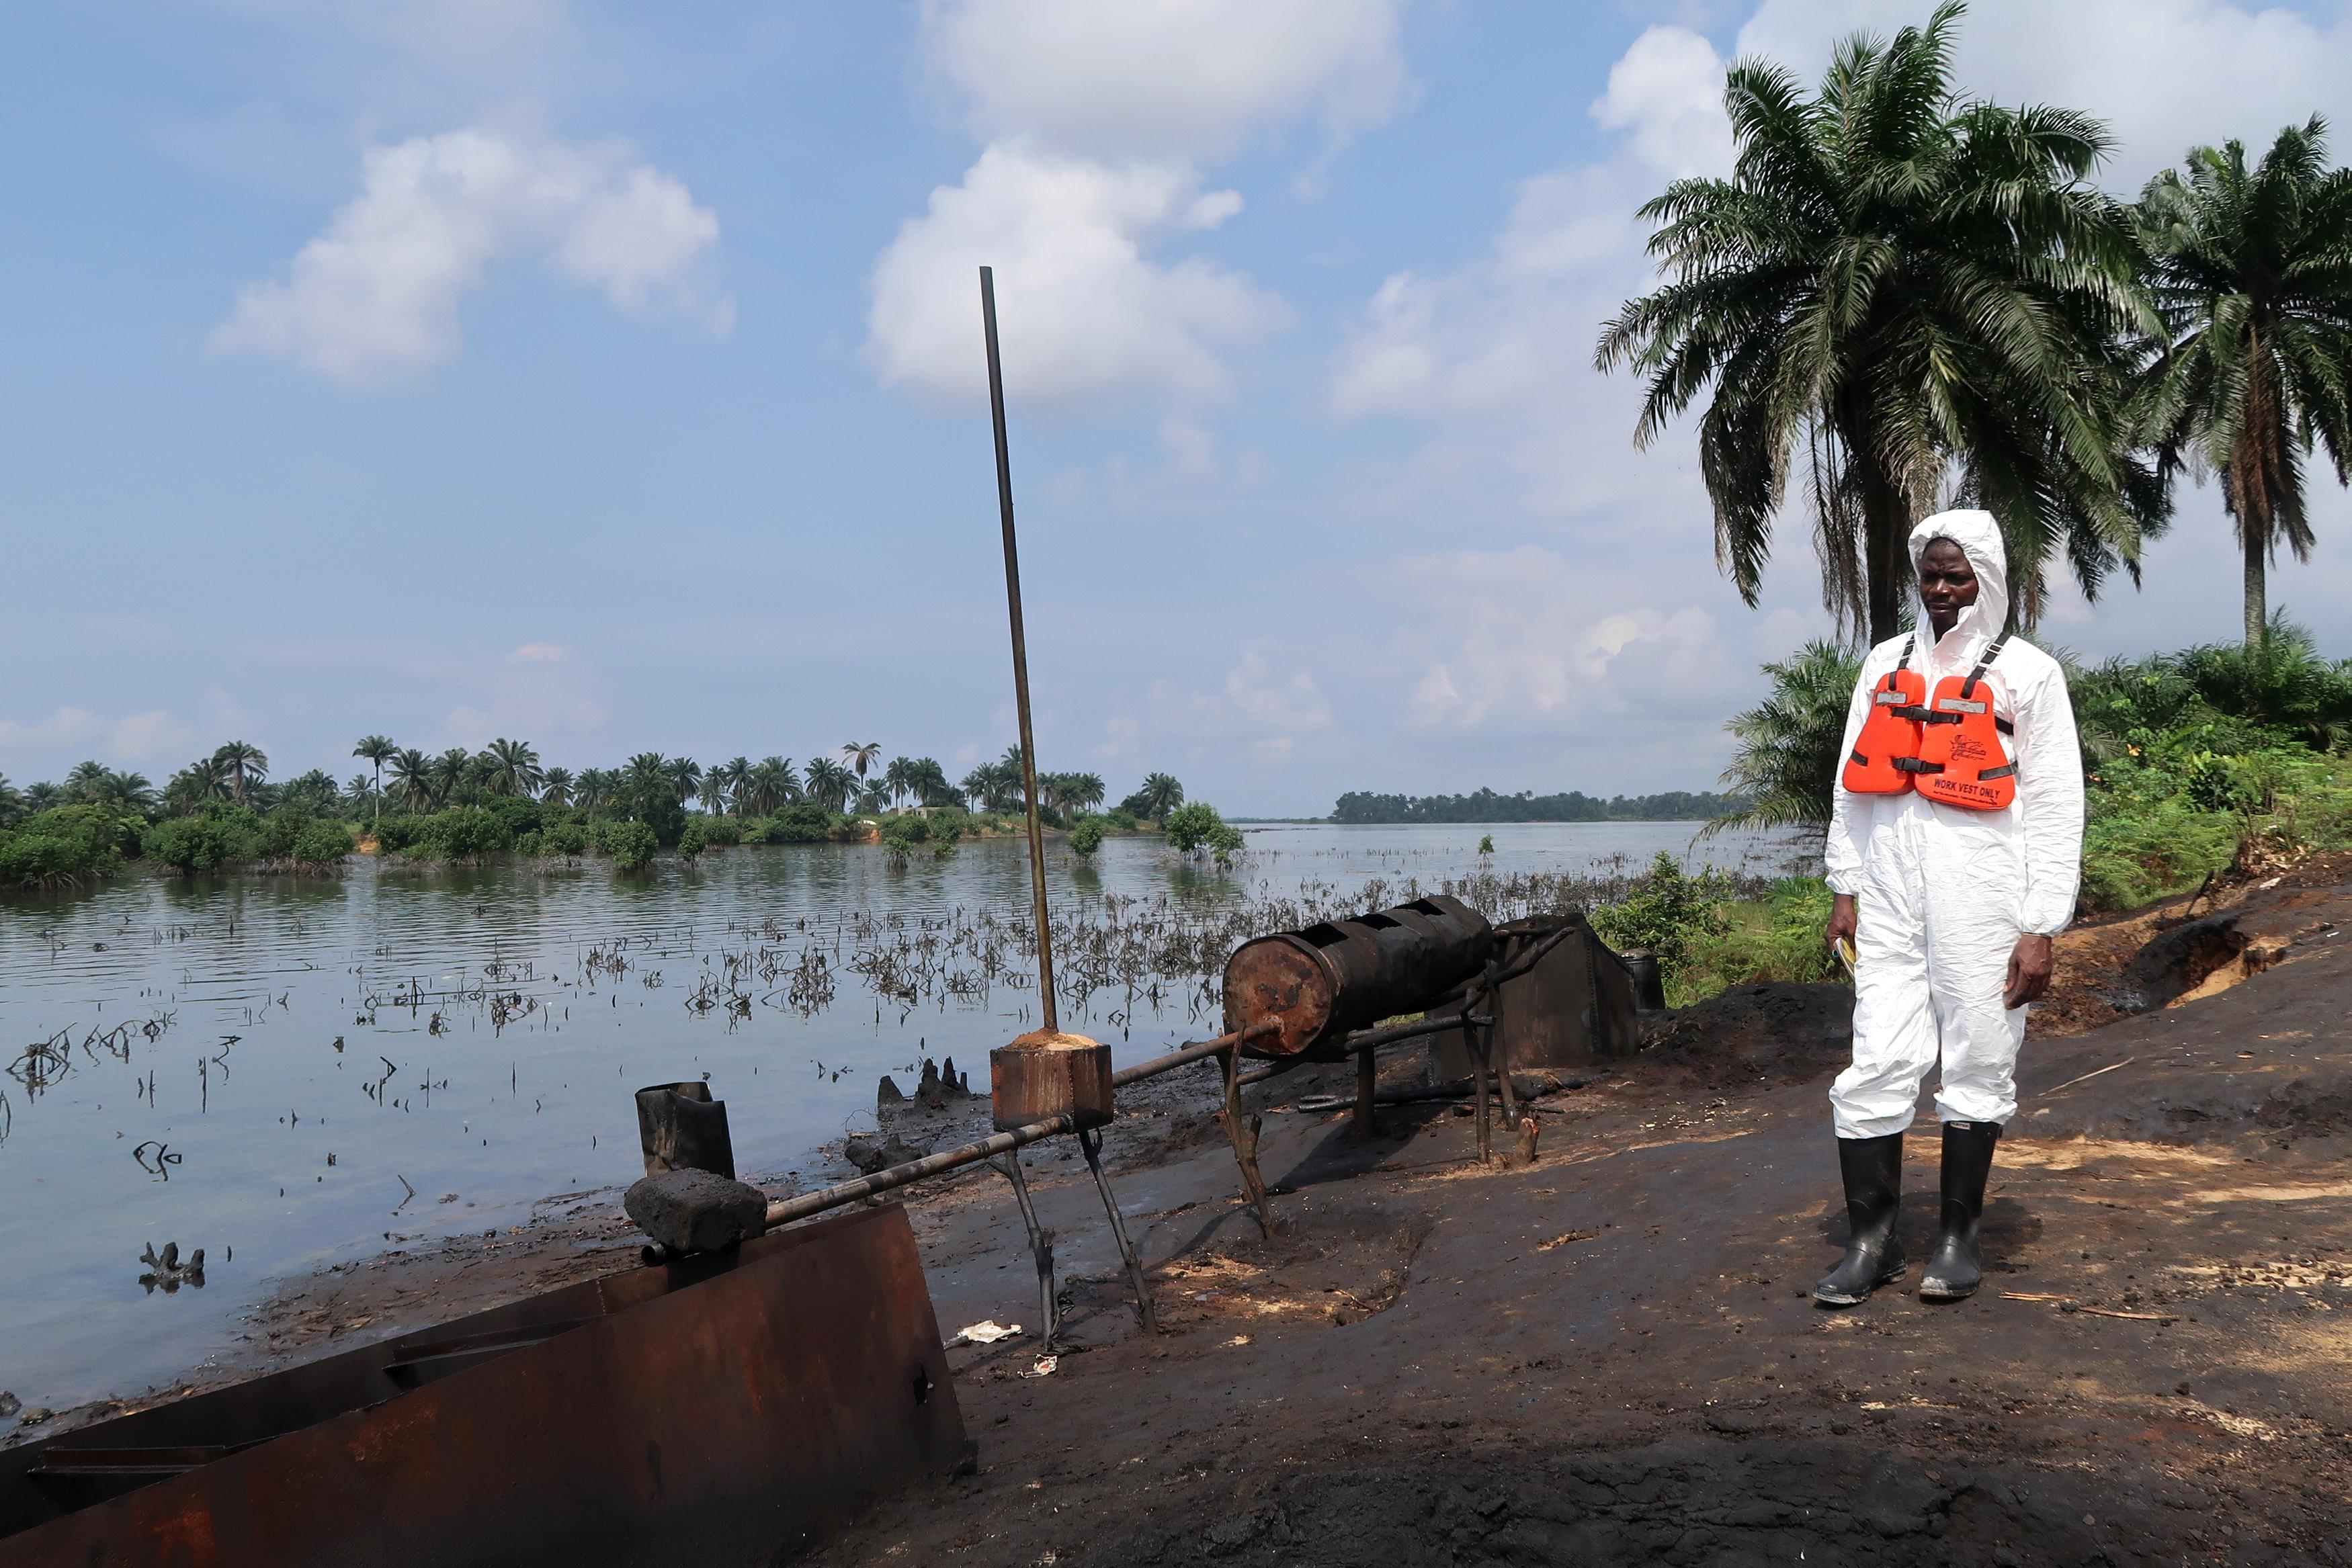 A member of the joint task force, part of the Bodo oil spill clean-up operation, stands near the site of an illegal refinery near the village of Bodo in the Niger Delta, Nigeria August 2, 2018. Picture taken August 2, 2018.   Ron Bousso